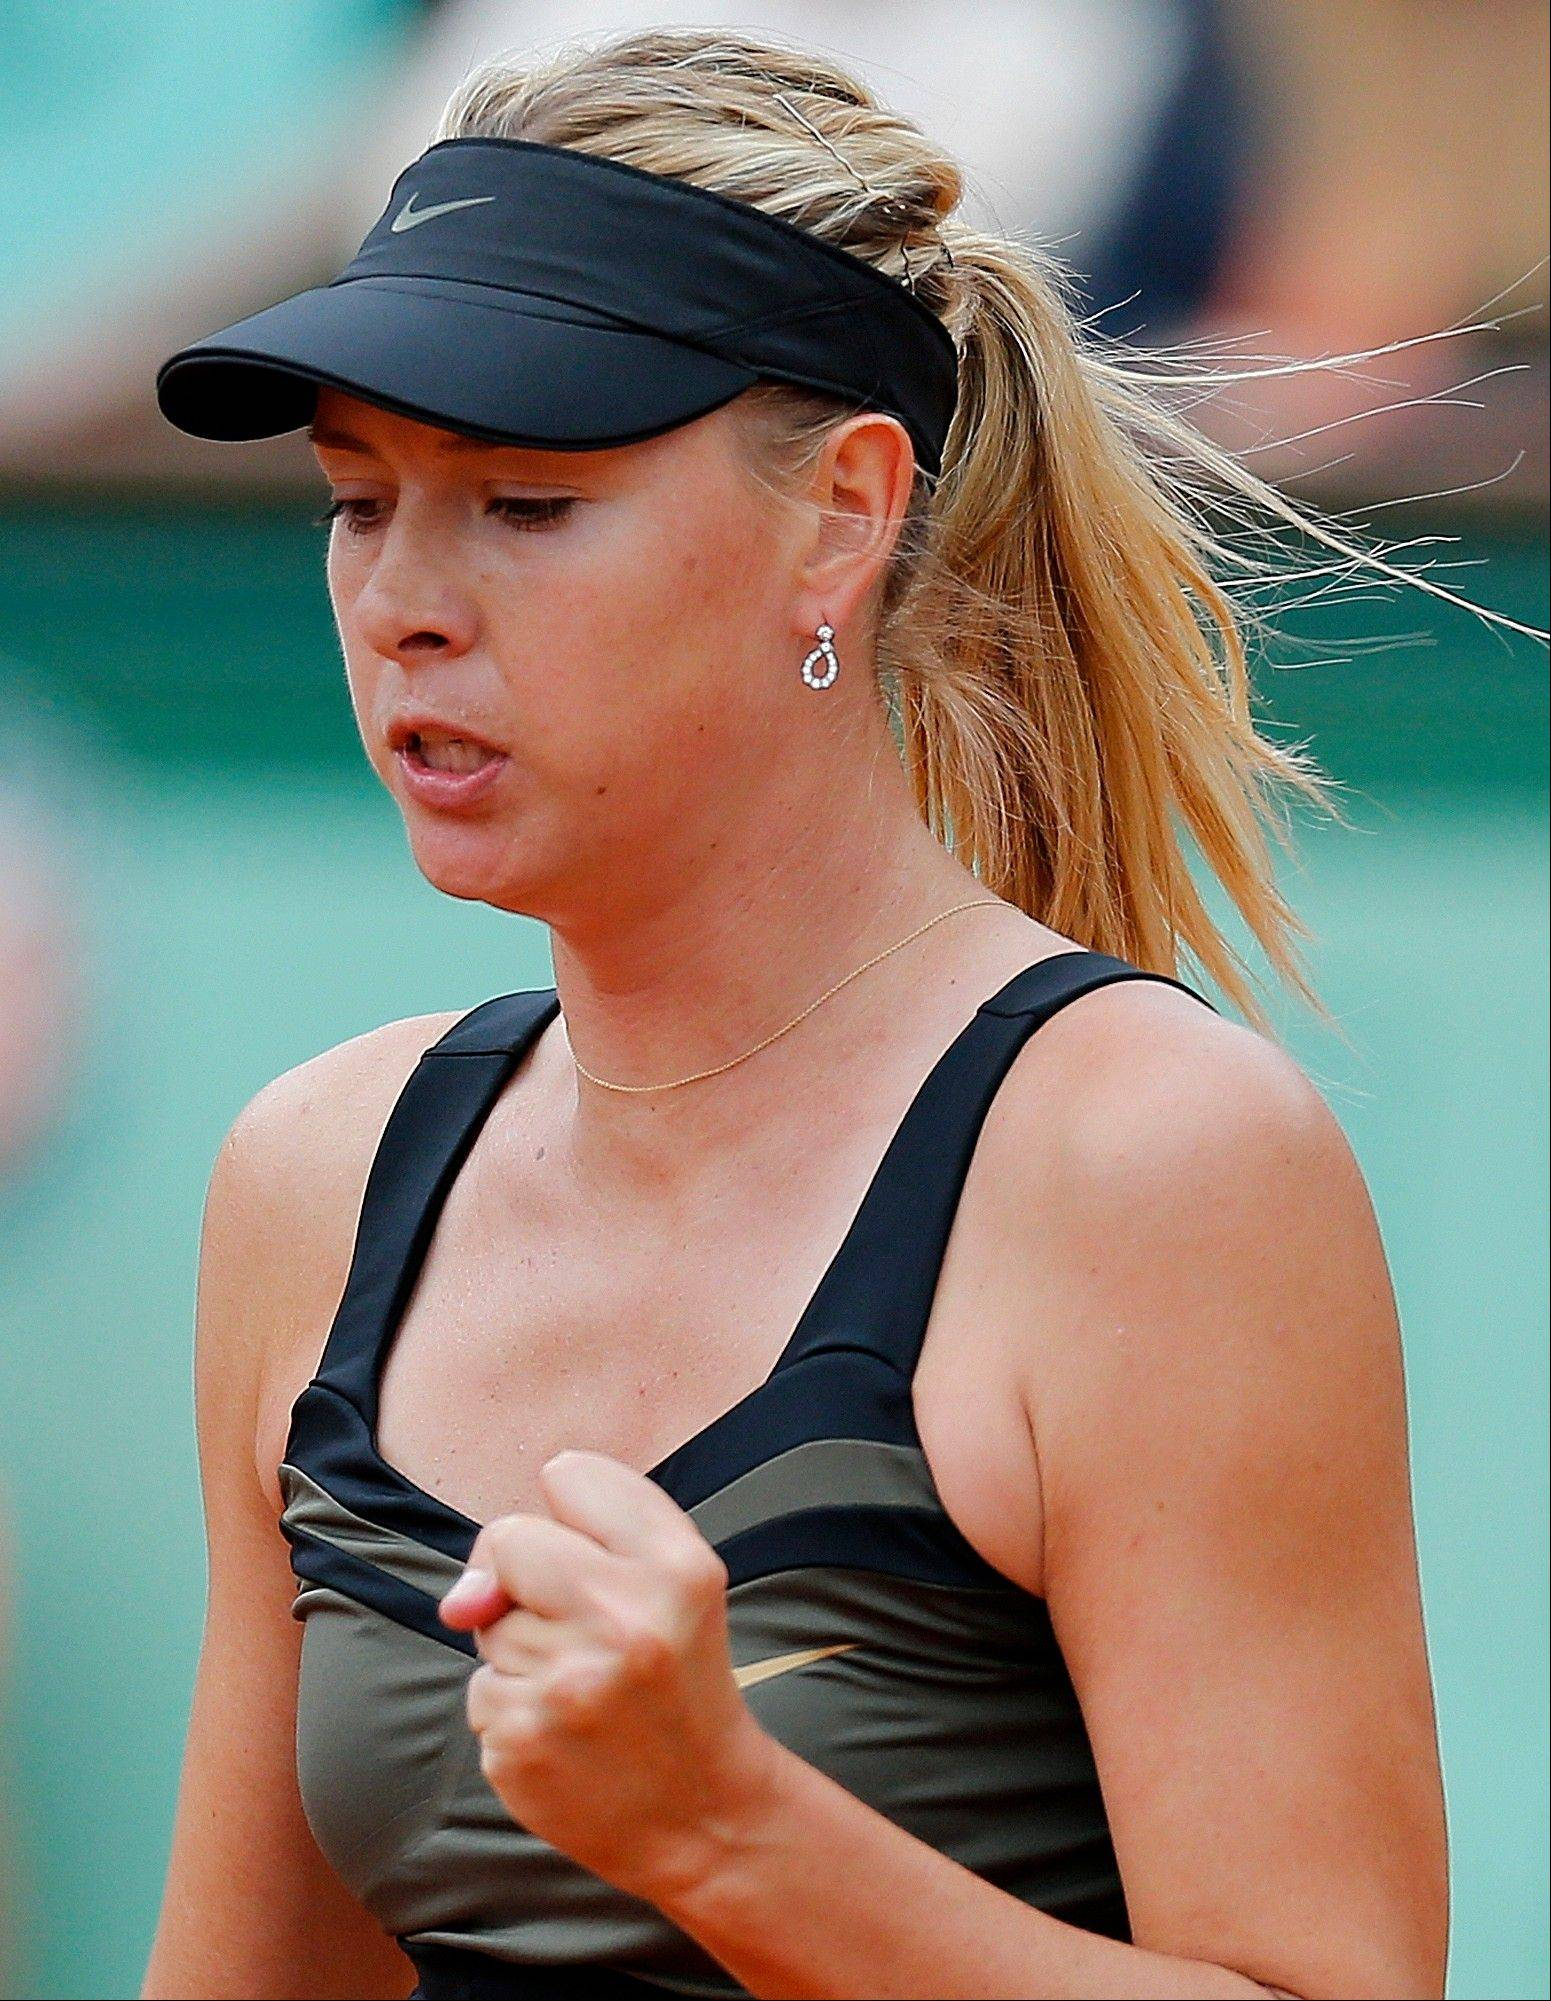 Maria Sharapova reacts after winning a point as she plays Sara Errani.